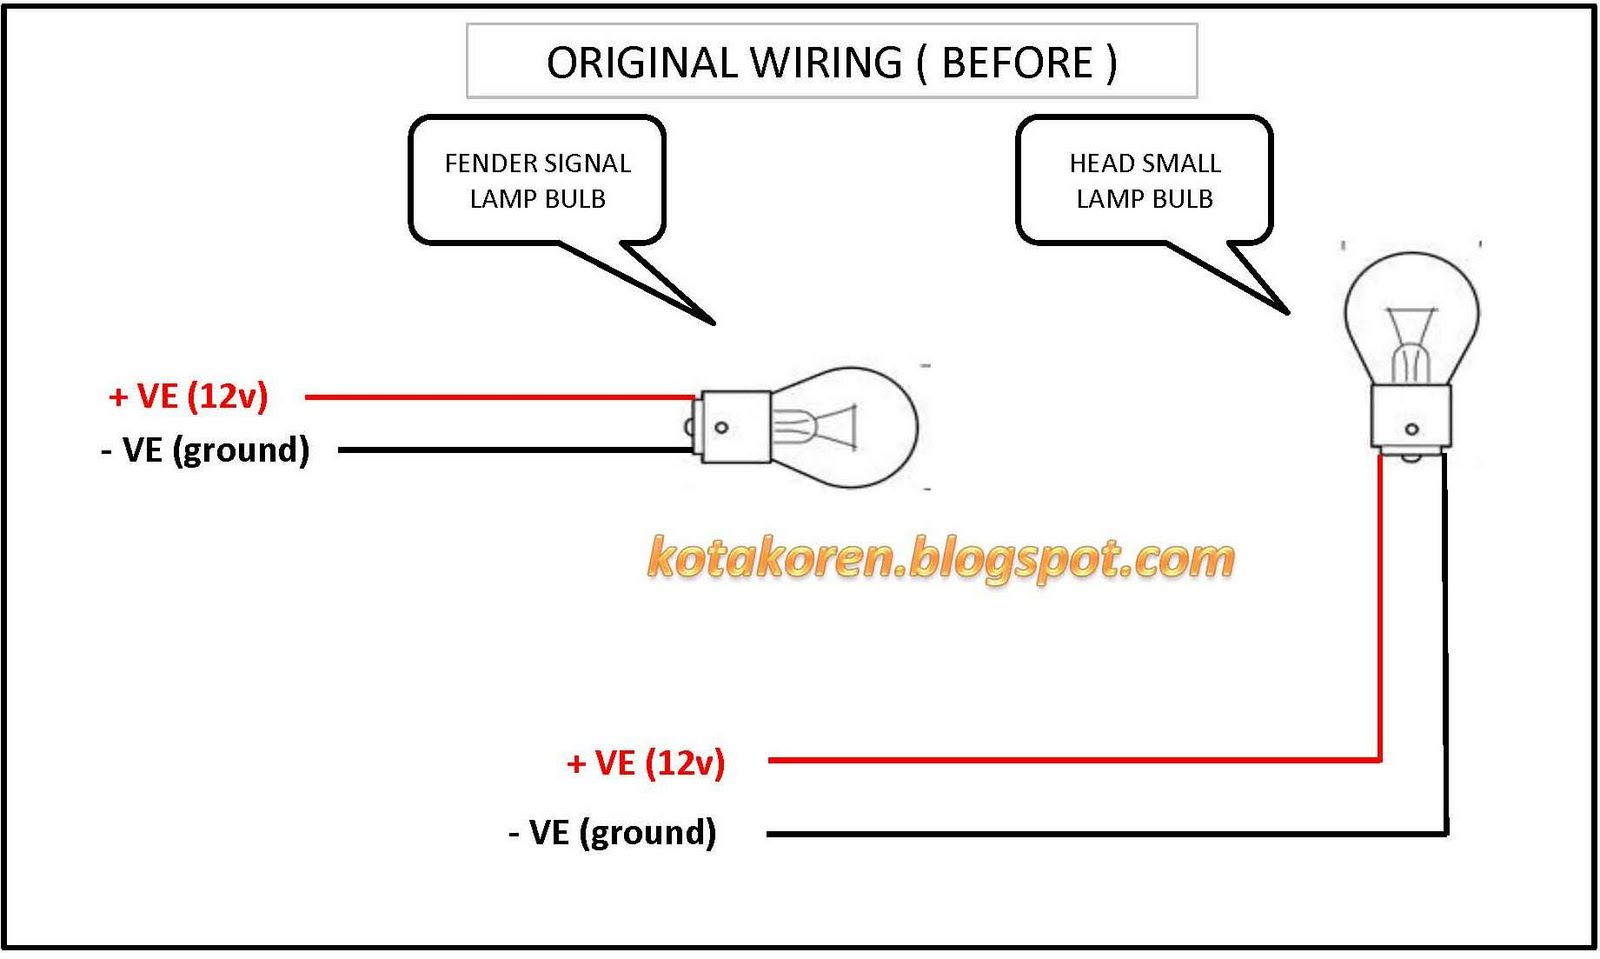 diy side fender lamp wira kotak oren rh kotakoren blogspot com Fog Lamp Wiring Harness wira fog lamp wiring diagram